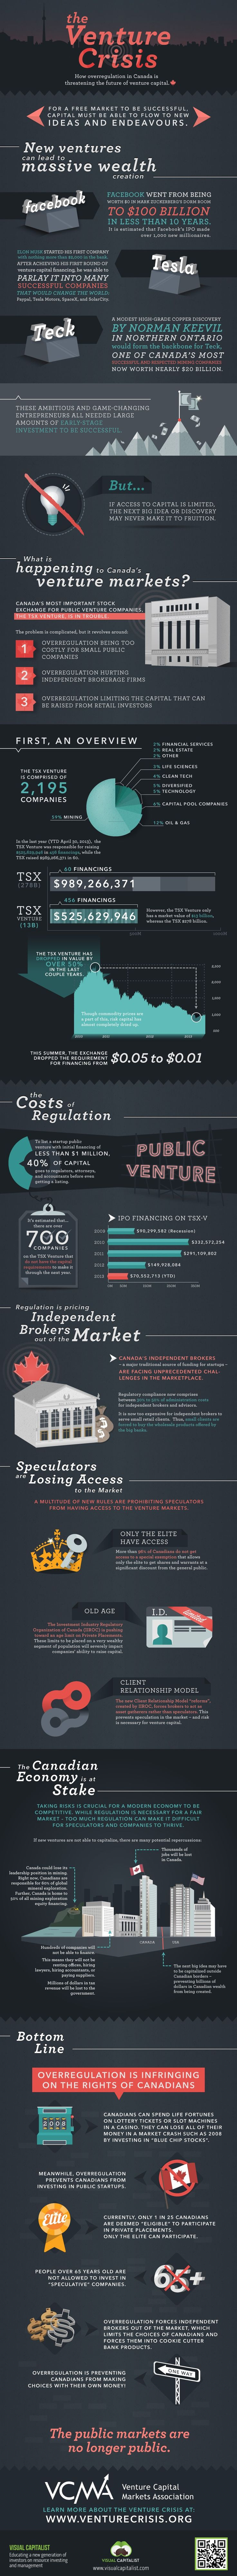 The Venture Crisis - How overregulation in Canada is threatening the future of venture capital. Infographic by Visual Capitalist